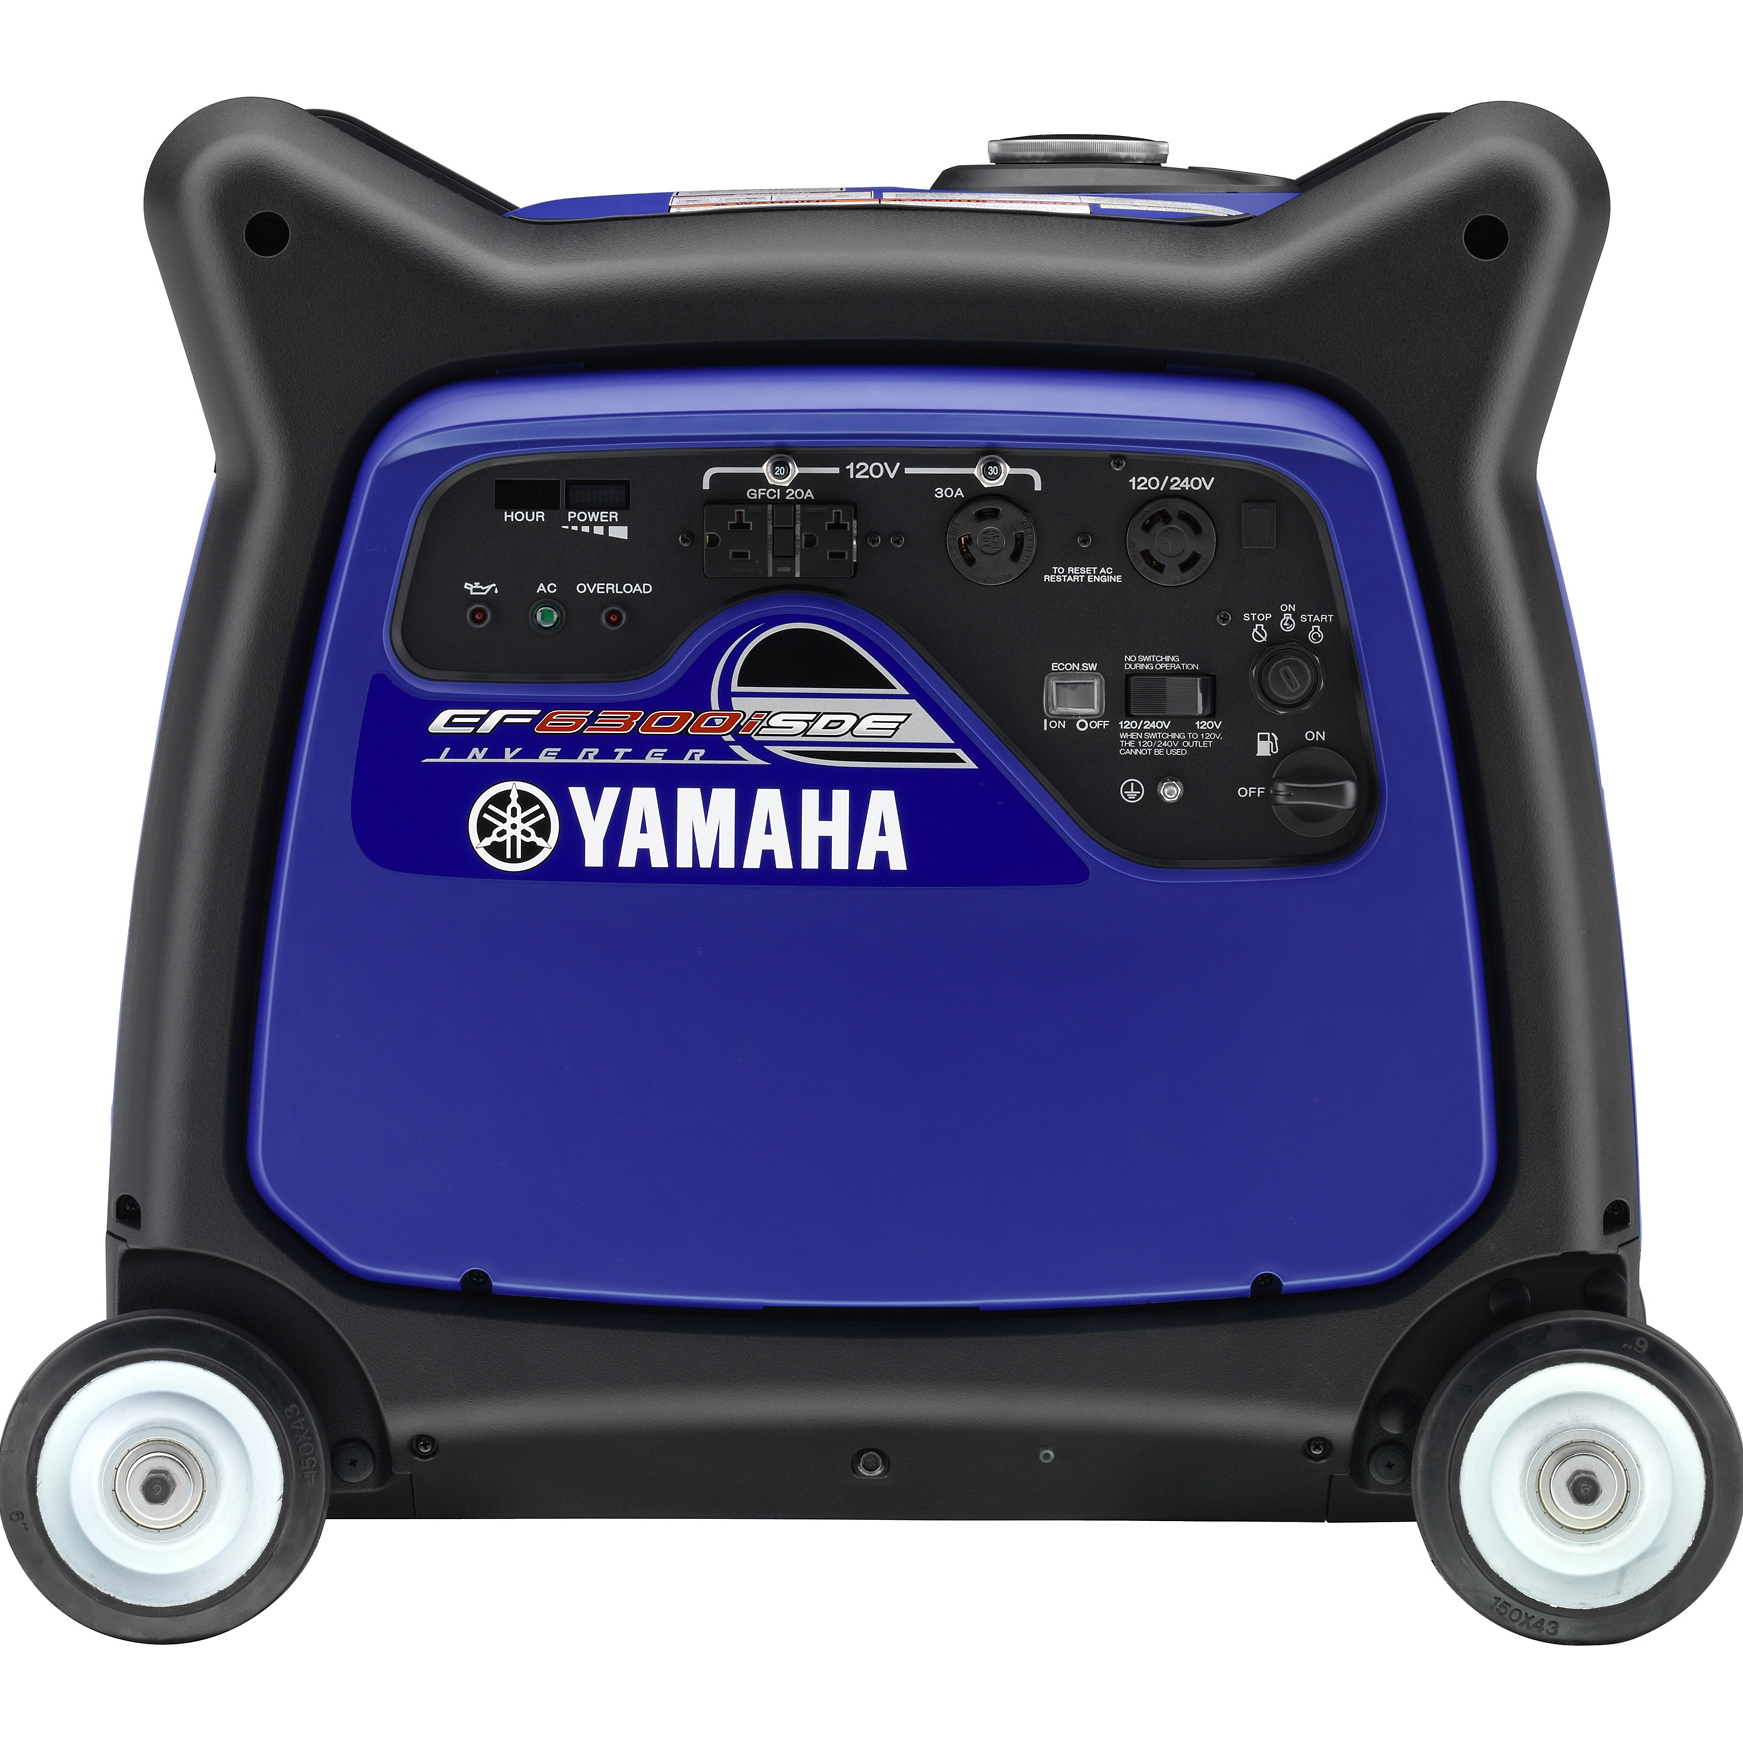 Yamaha EF6300iSDE 6300 Watt Electric Start Gas Power Portable Inverter Generator